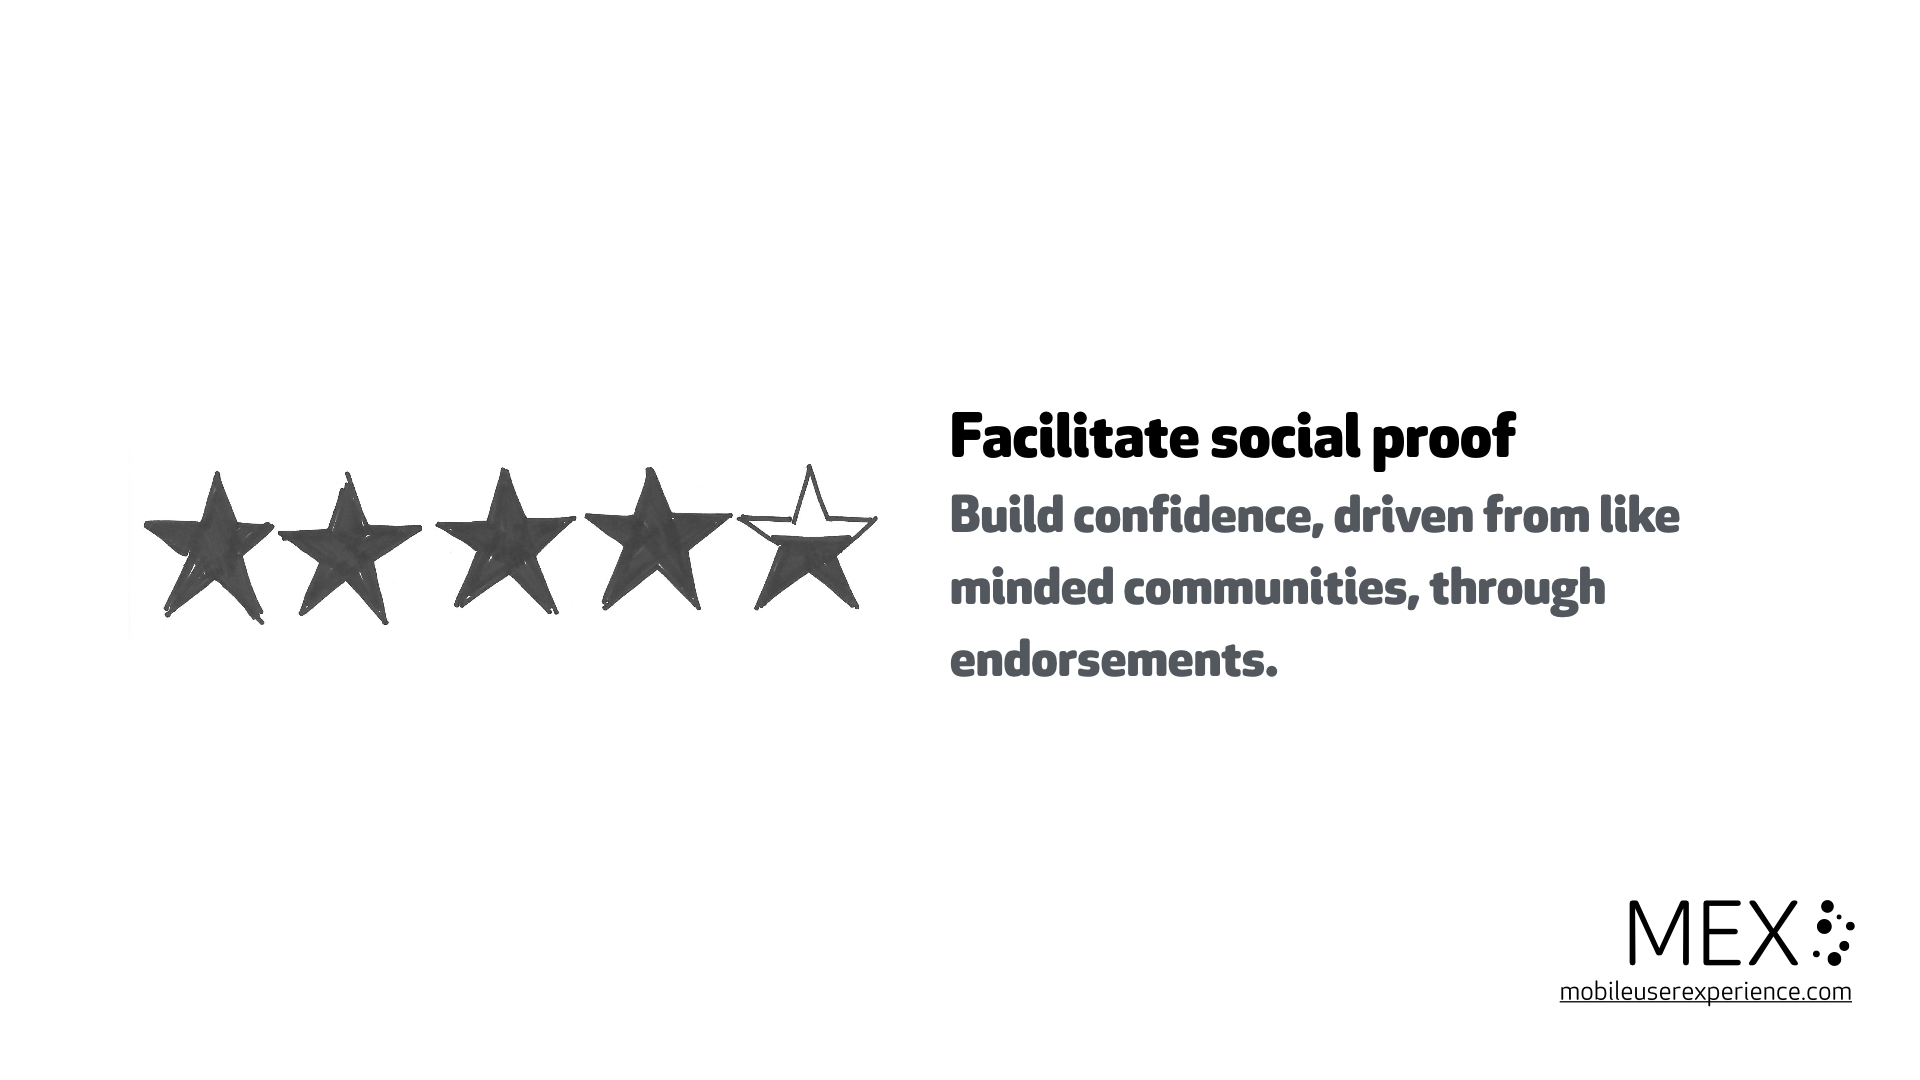 Facilitate social proof Build confidence, driven from like minded communities, through endorsements.